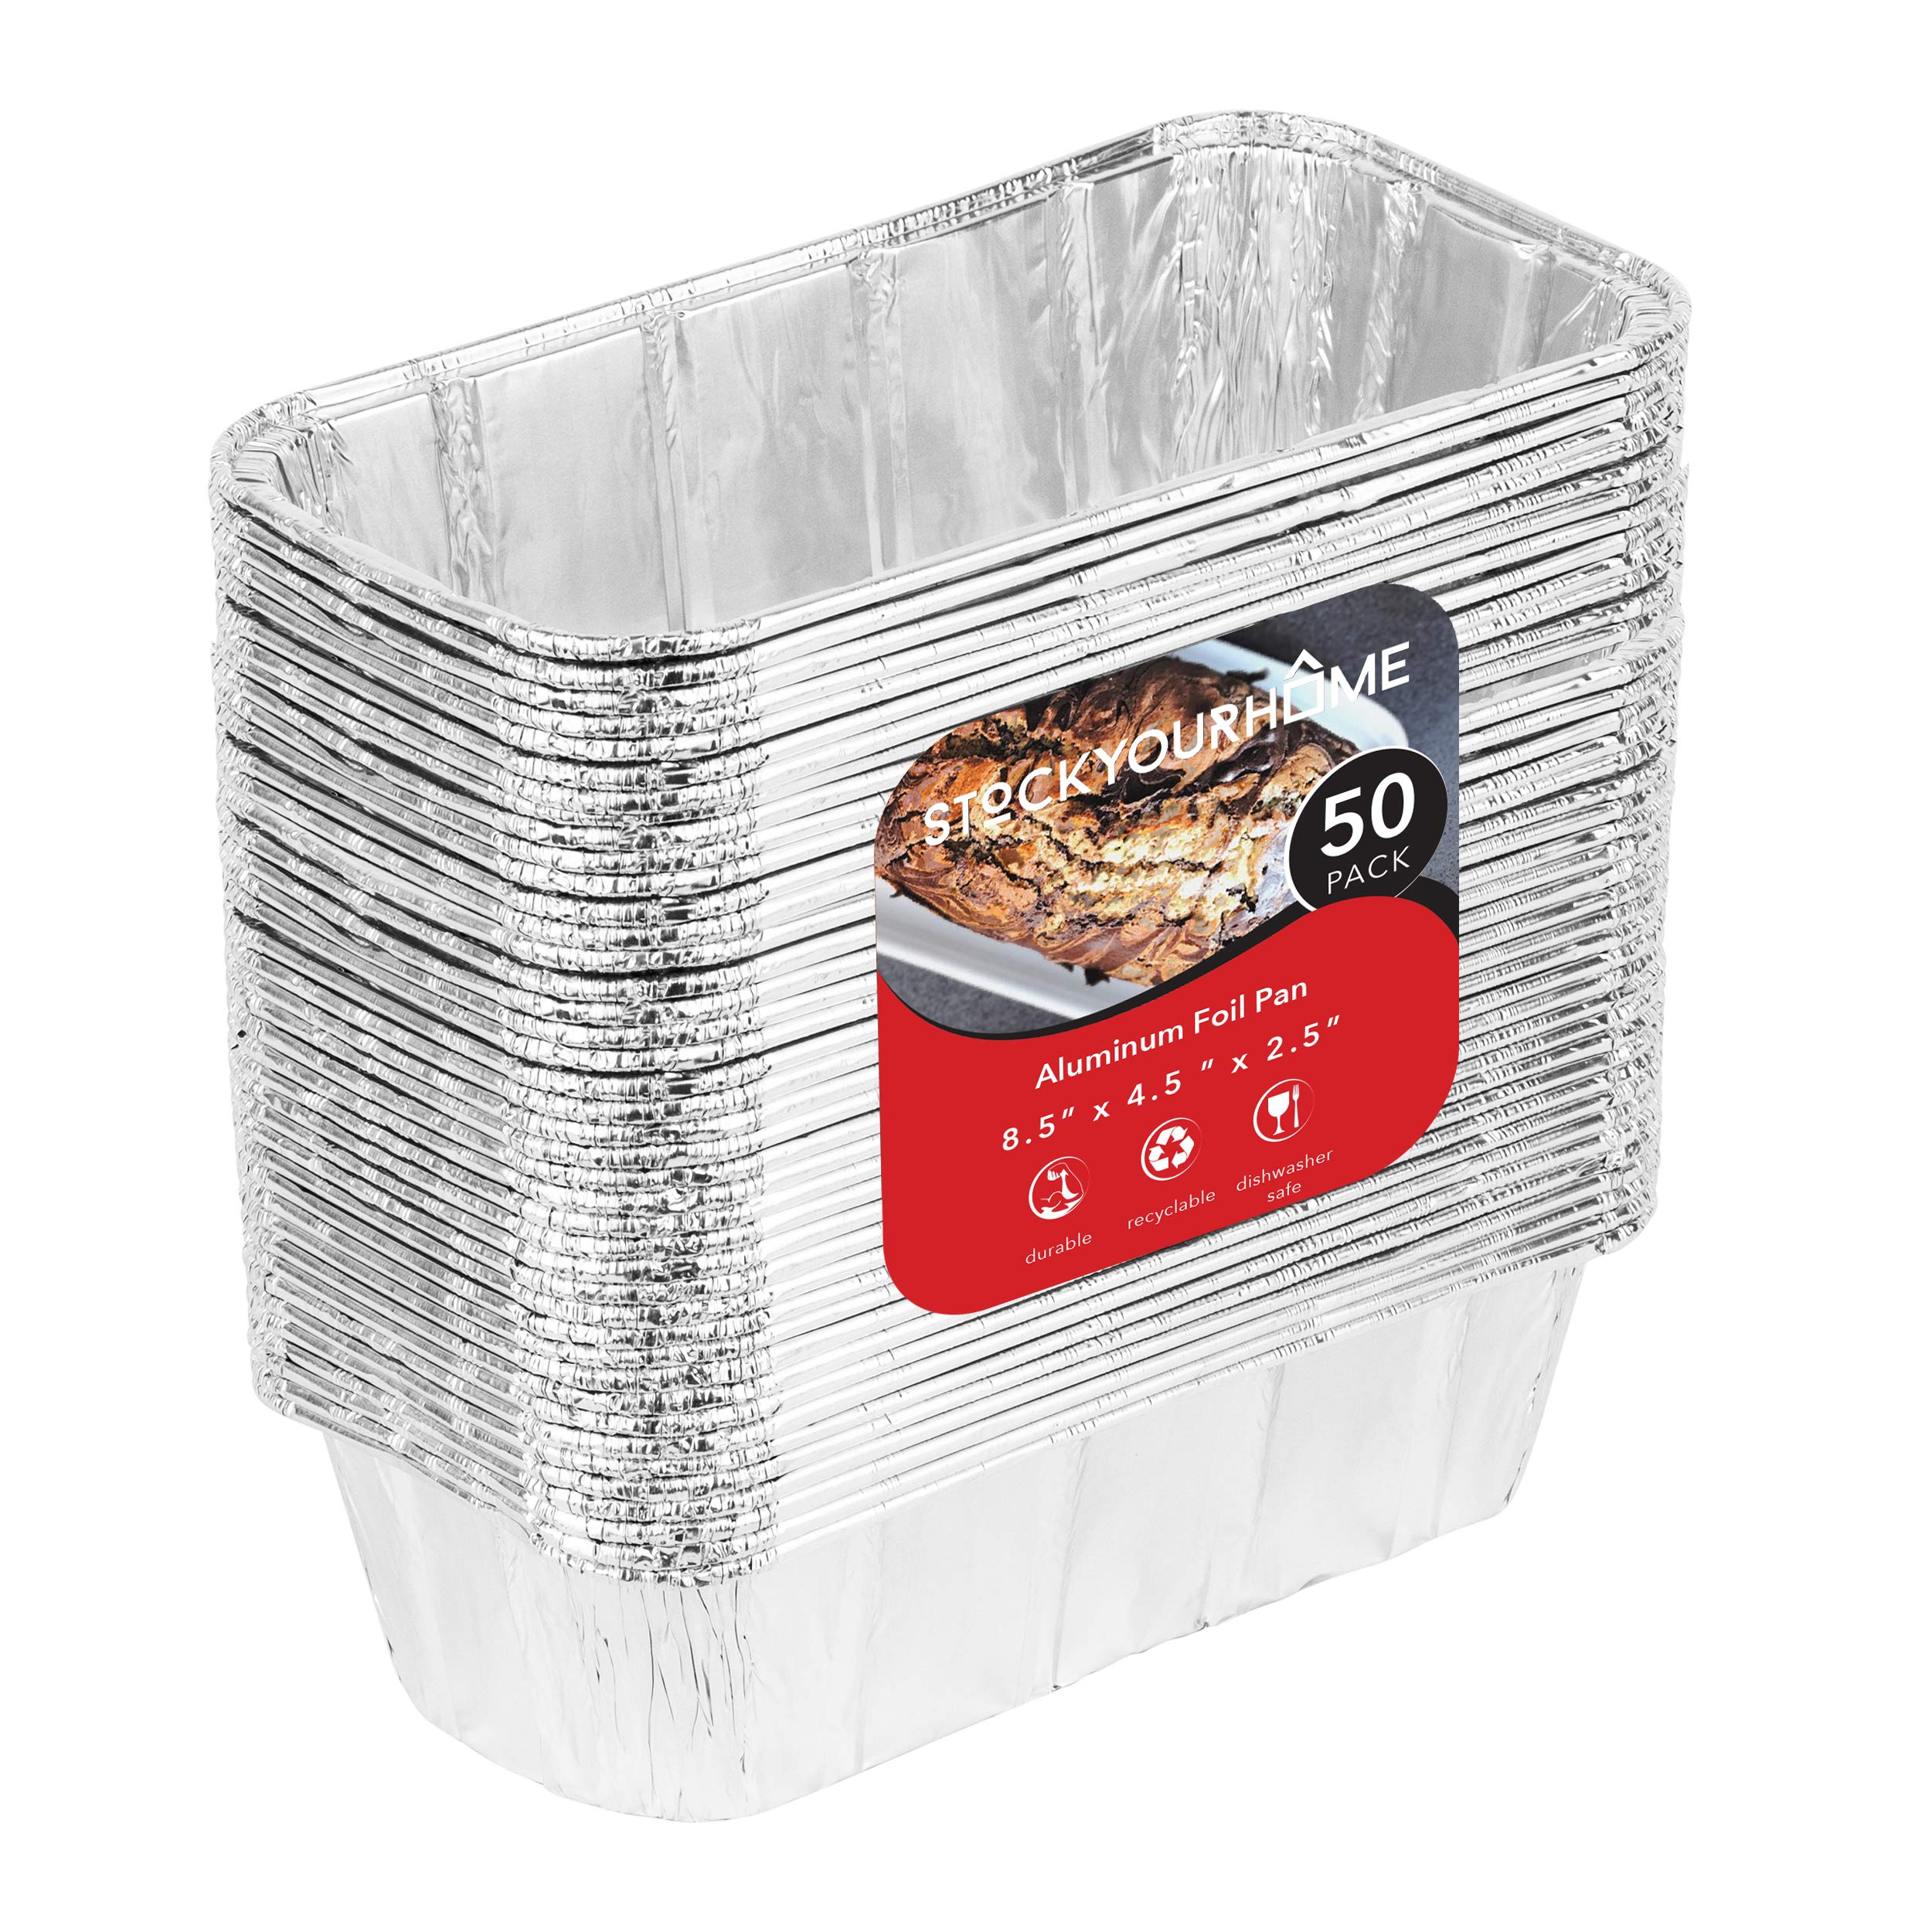 Aluminum Pans for Bread Loaf Baking (50 Pack) 8x4 Aluminum Foil Loaf Pan - 2 Lb Bread Tins, Standard Size, Compatible with Roadpro 12 Volt Portable Stove - Perfect for Baking Cakes, Meatloaf, Lasagna by Stock Your Home